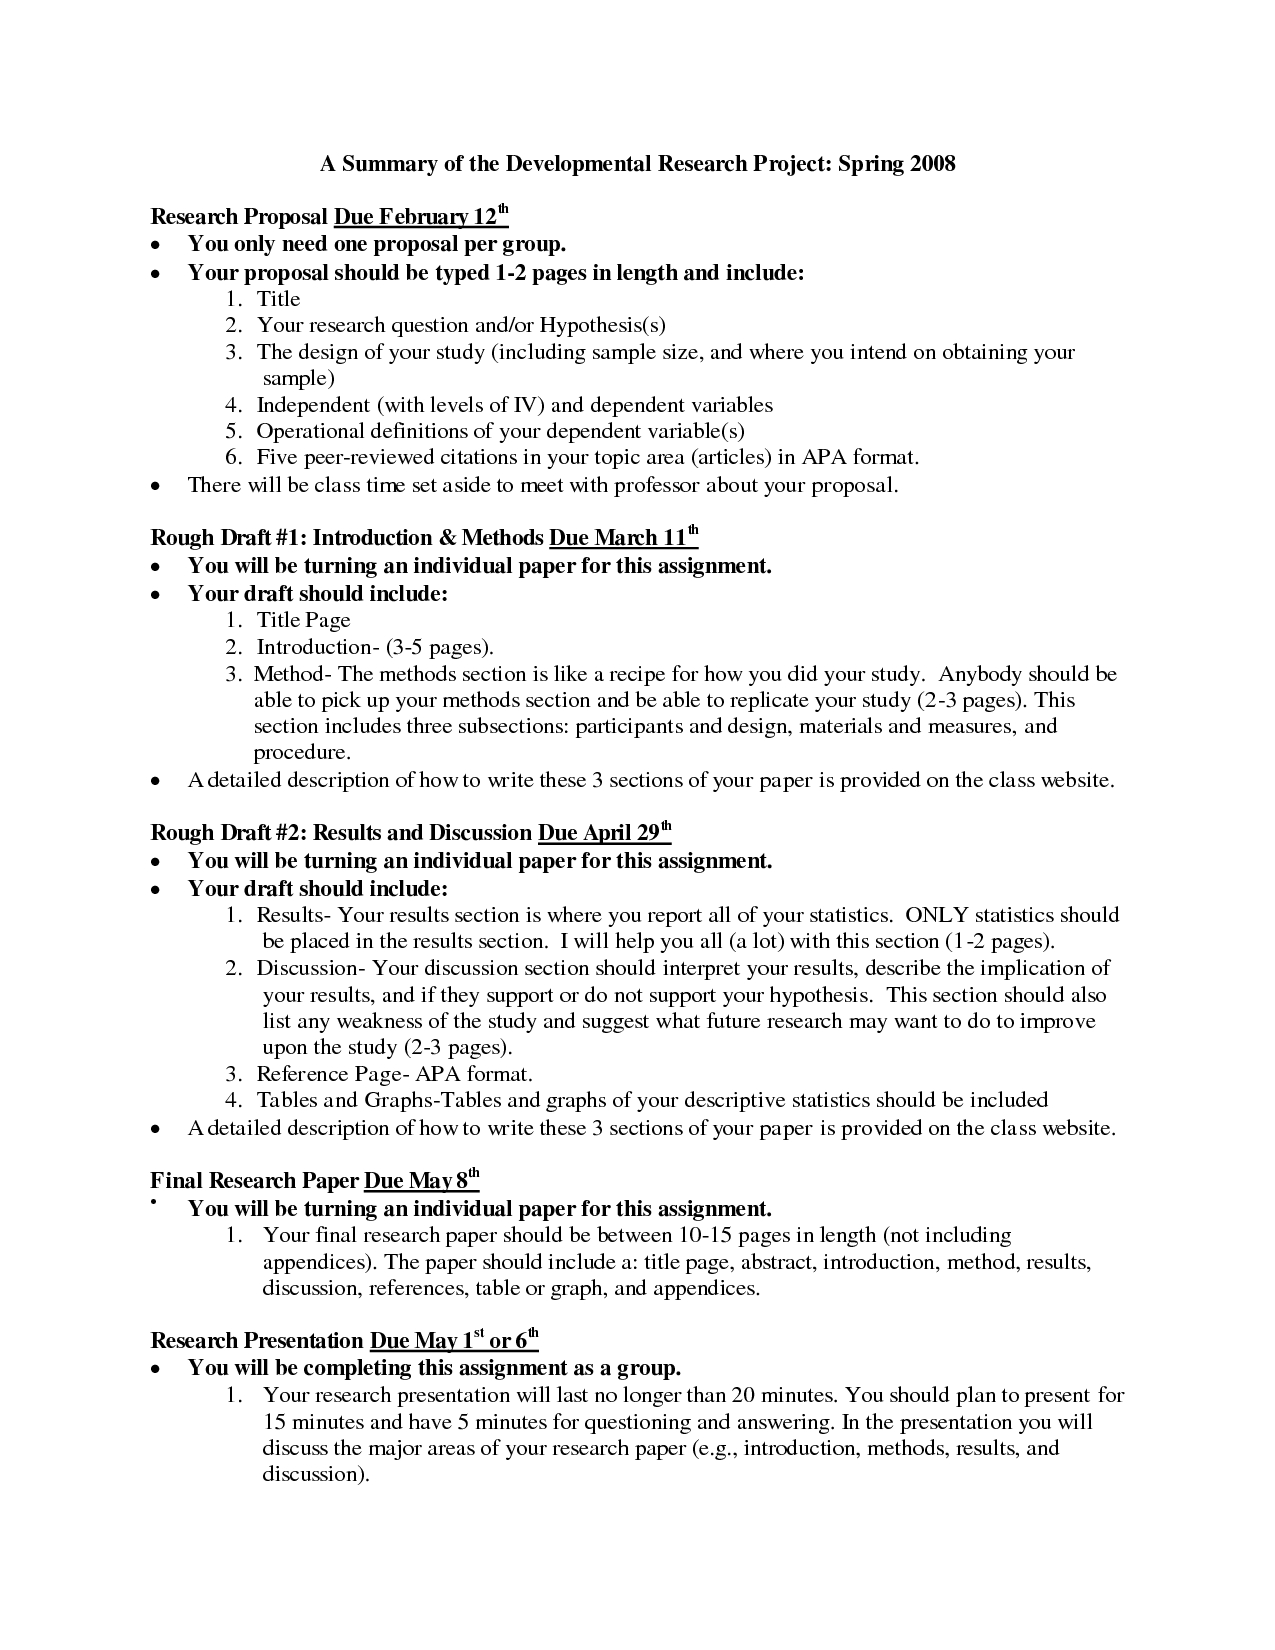 012 Good Research Paper Topic Psychology Undergraduate Resume Unique Sample Singular Topics About Music Persuasive Full